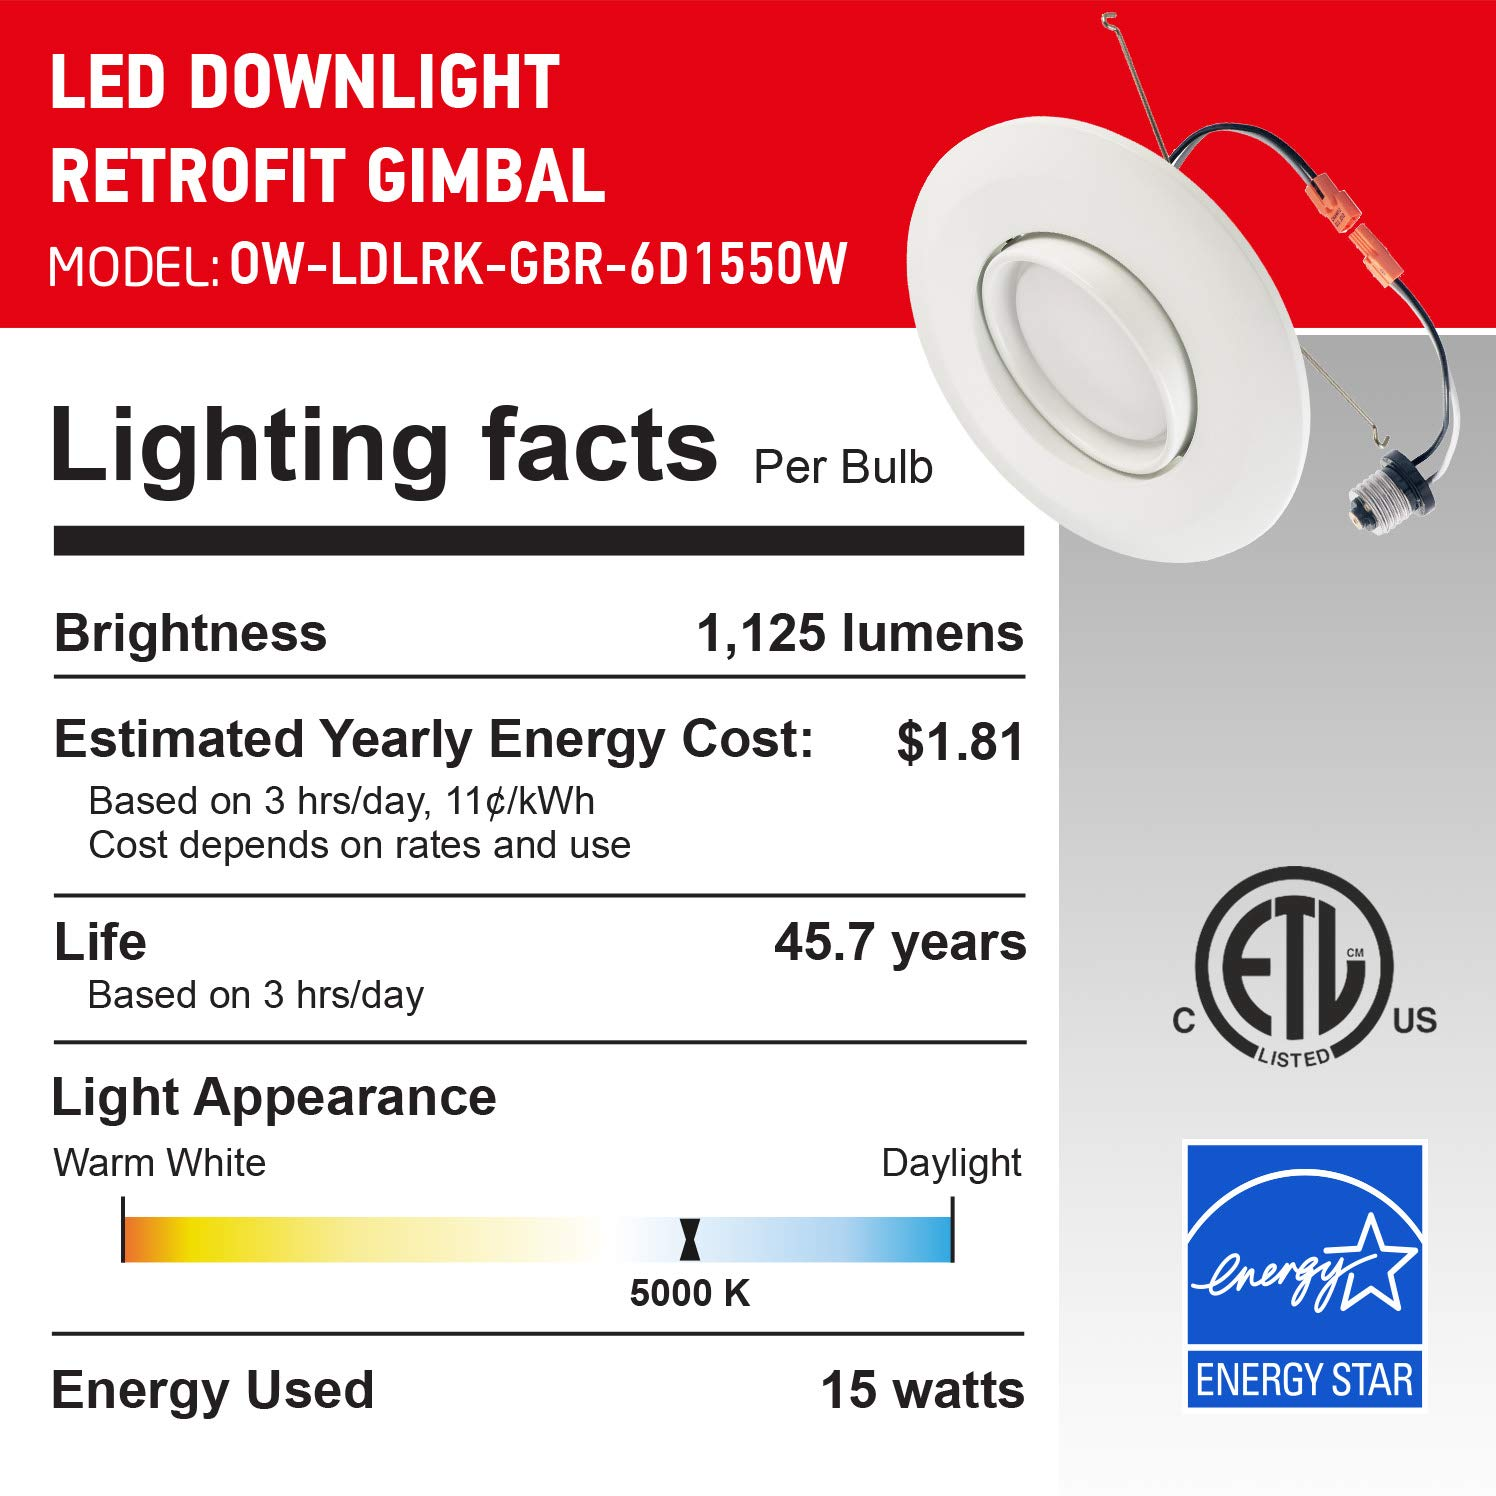 Dimmable 1150 Lm 3000K Warm Light ETL /& Energy Star Adjustable Angle Downlight Directional 120 Watt Replacement OSTWIN 6 Inch Directional Recessed LED Can Gimbal Light Fixture 15 W